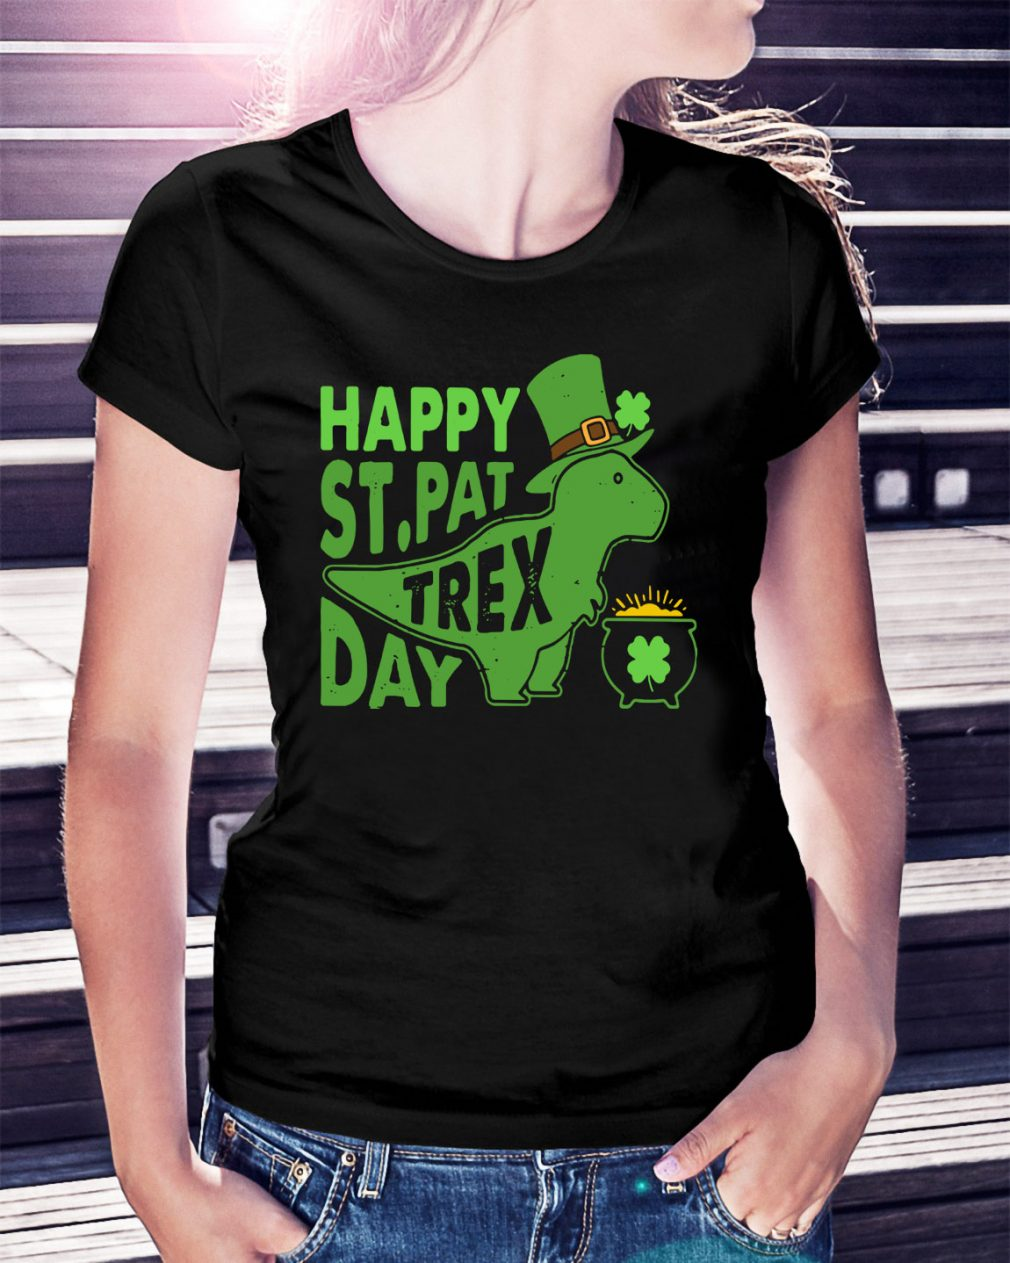 Happy St Pat t-rex day Ladies Tee